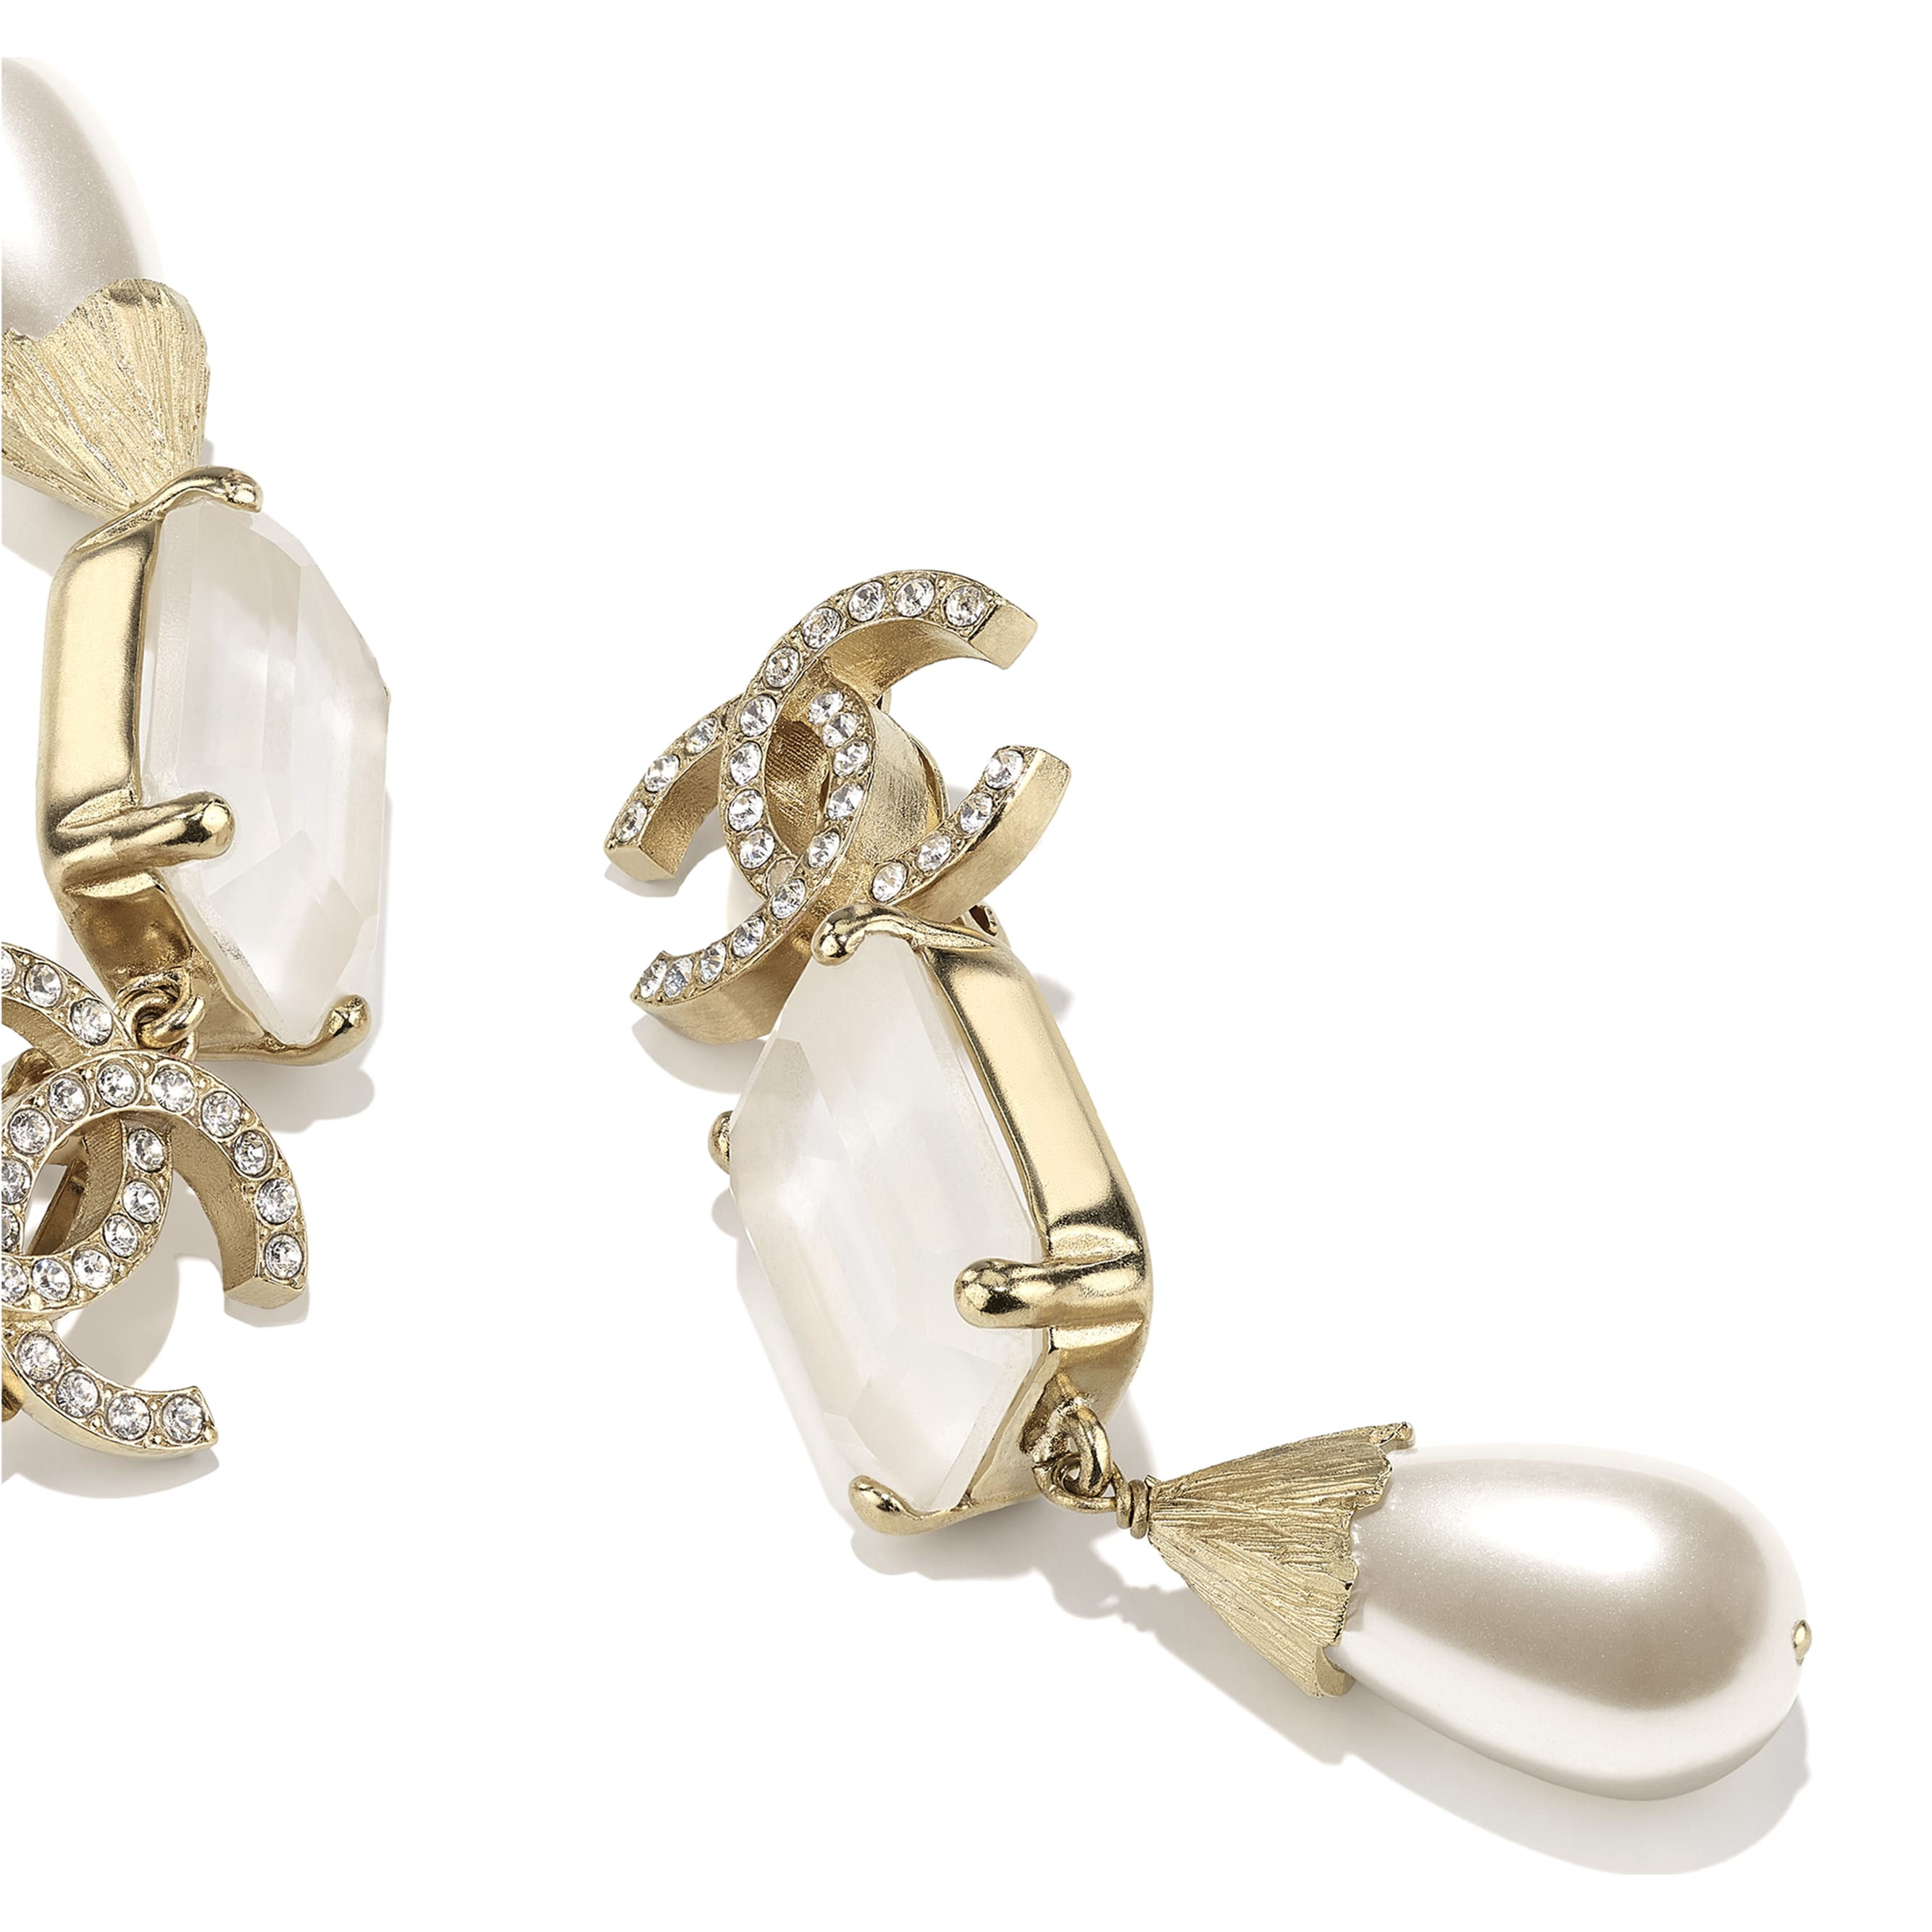 Earrings - Gold, Pearly White, White & Crystal - Metal, Imitation Pearls & Diamanté - CHANEL - Alternative view - see standard sized version